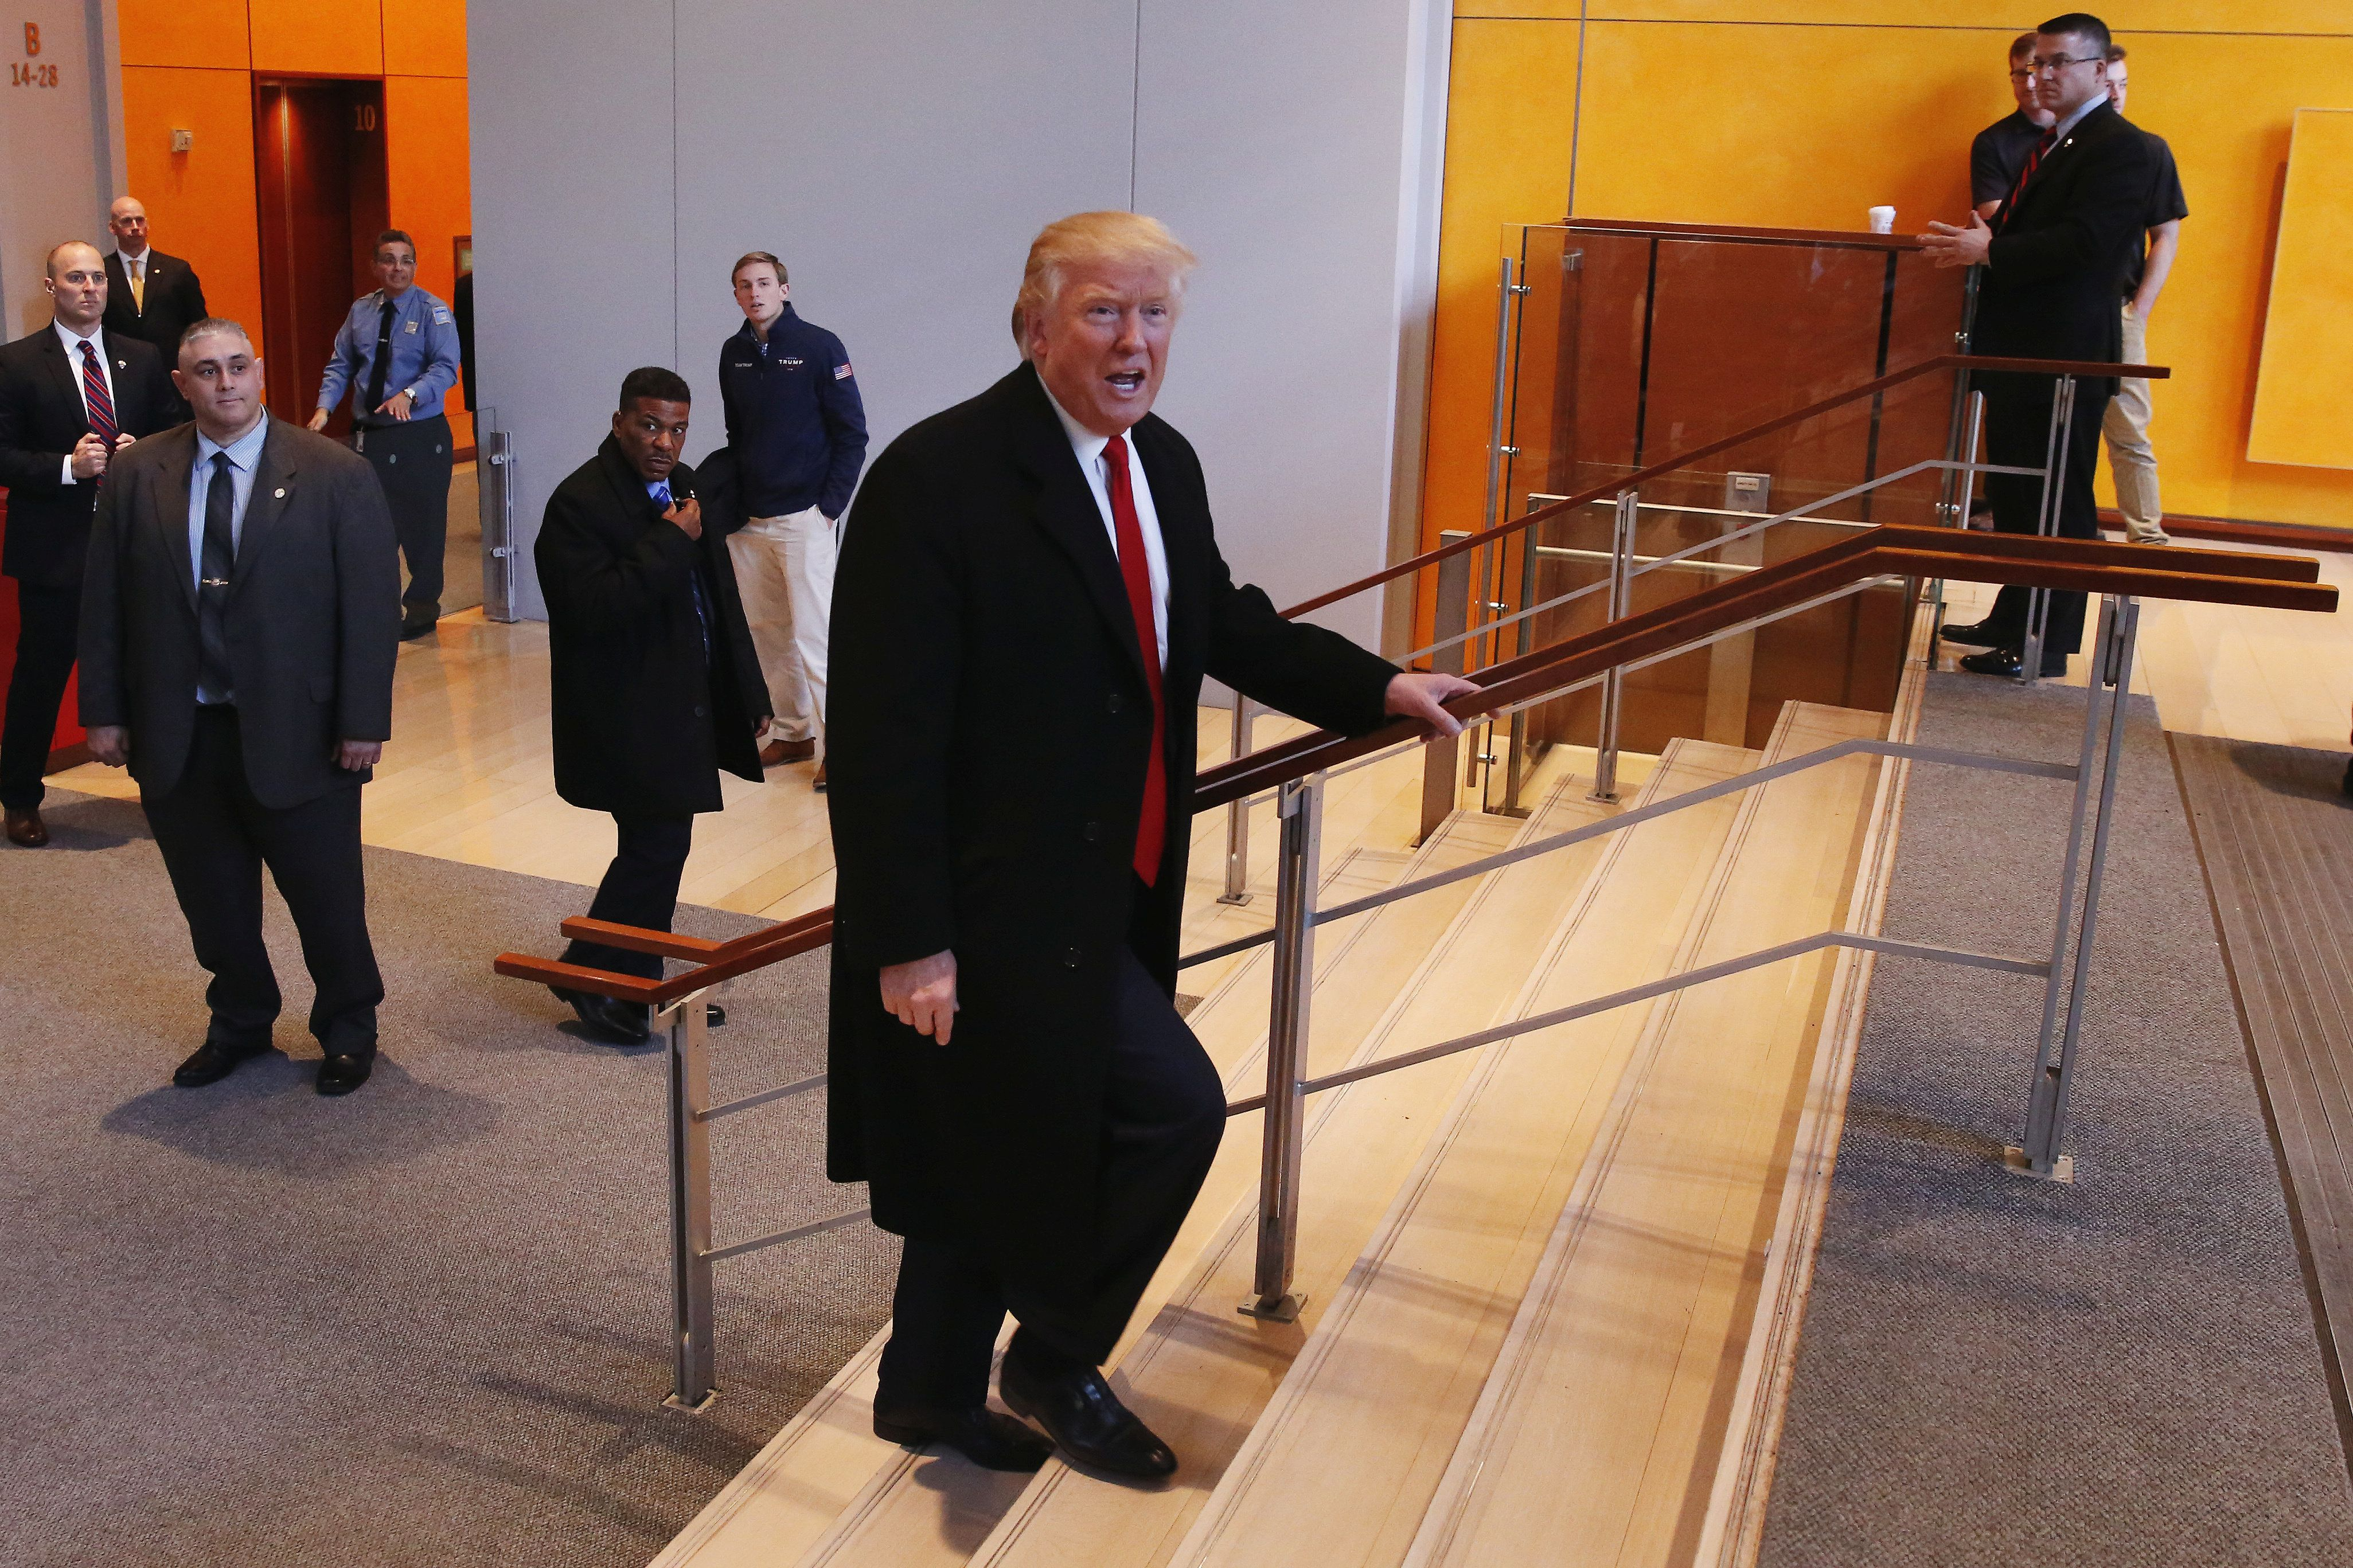 Donald Trump at the offices of The New York Times, Nov. 22, 2016.